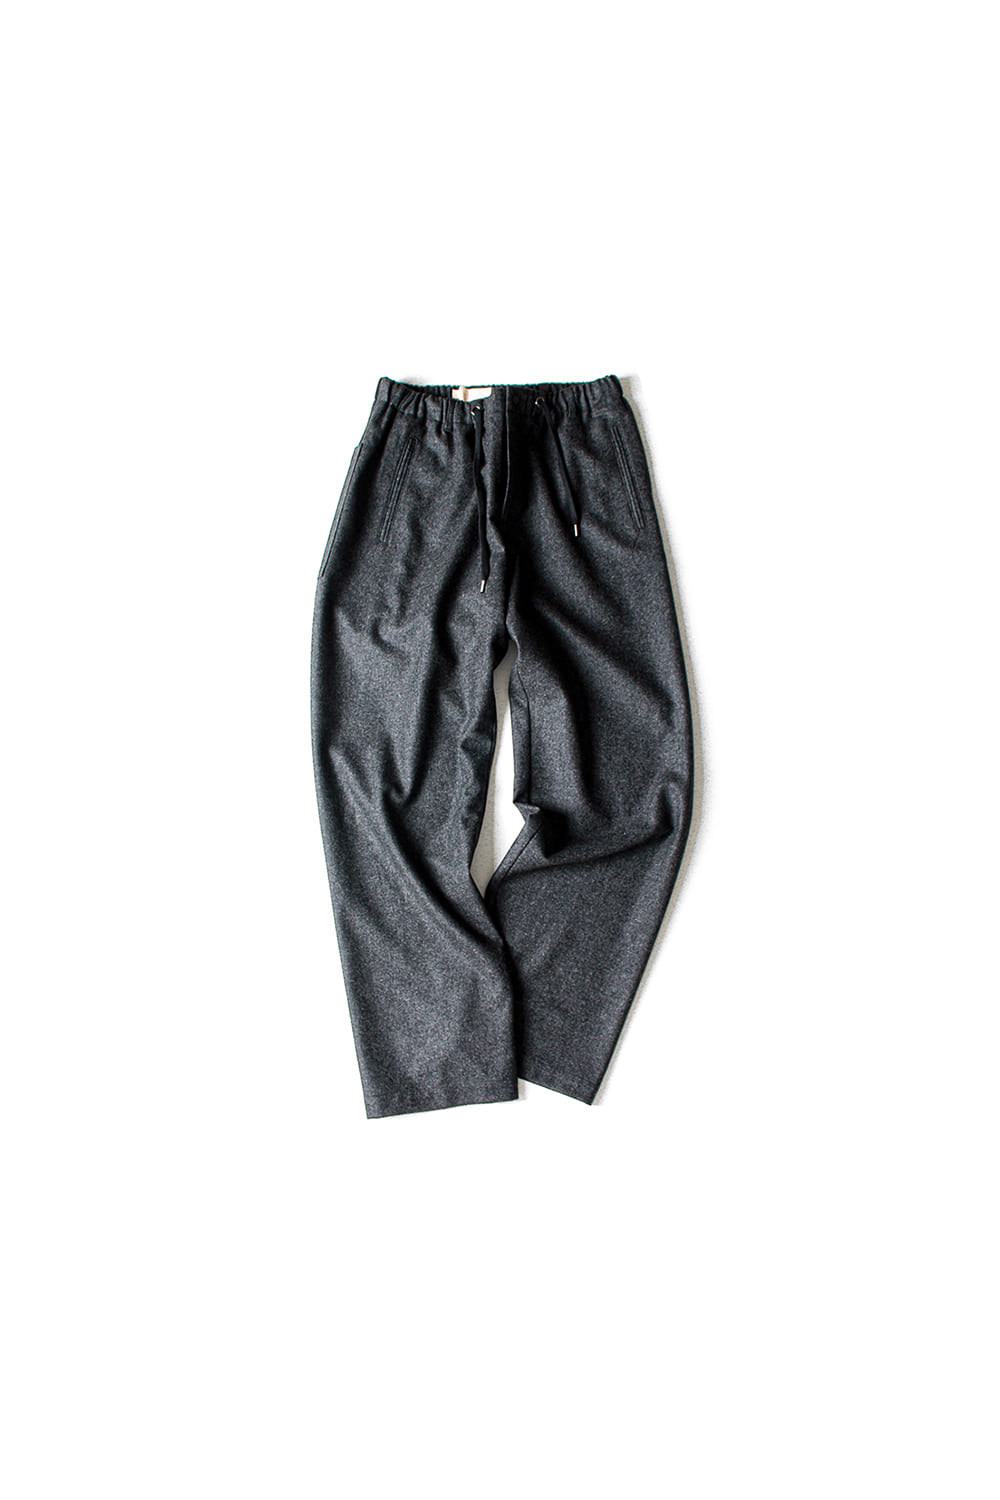 [Ourselves] FINE WOOL SLUMBER PANTS (CH)